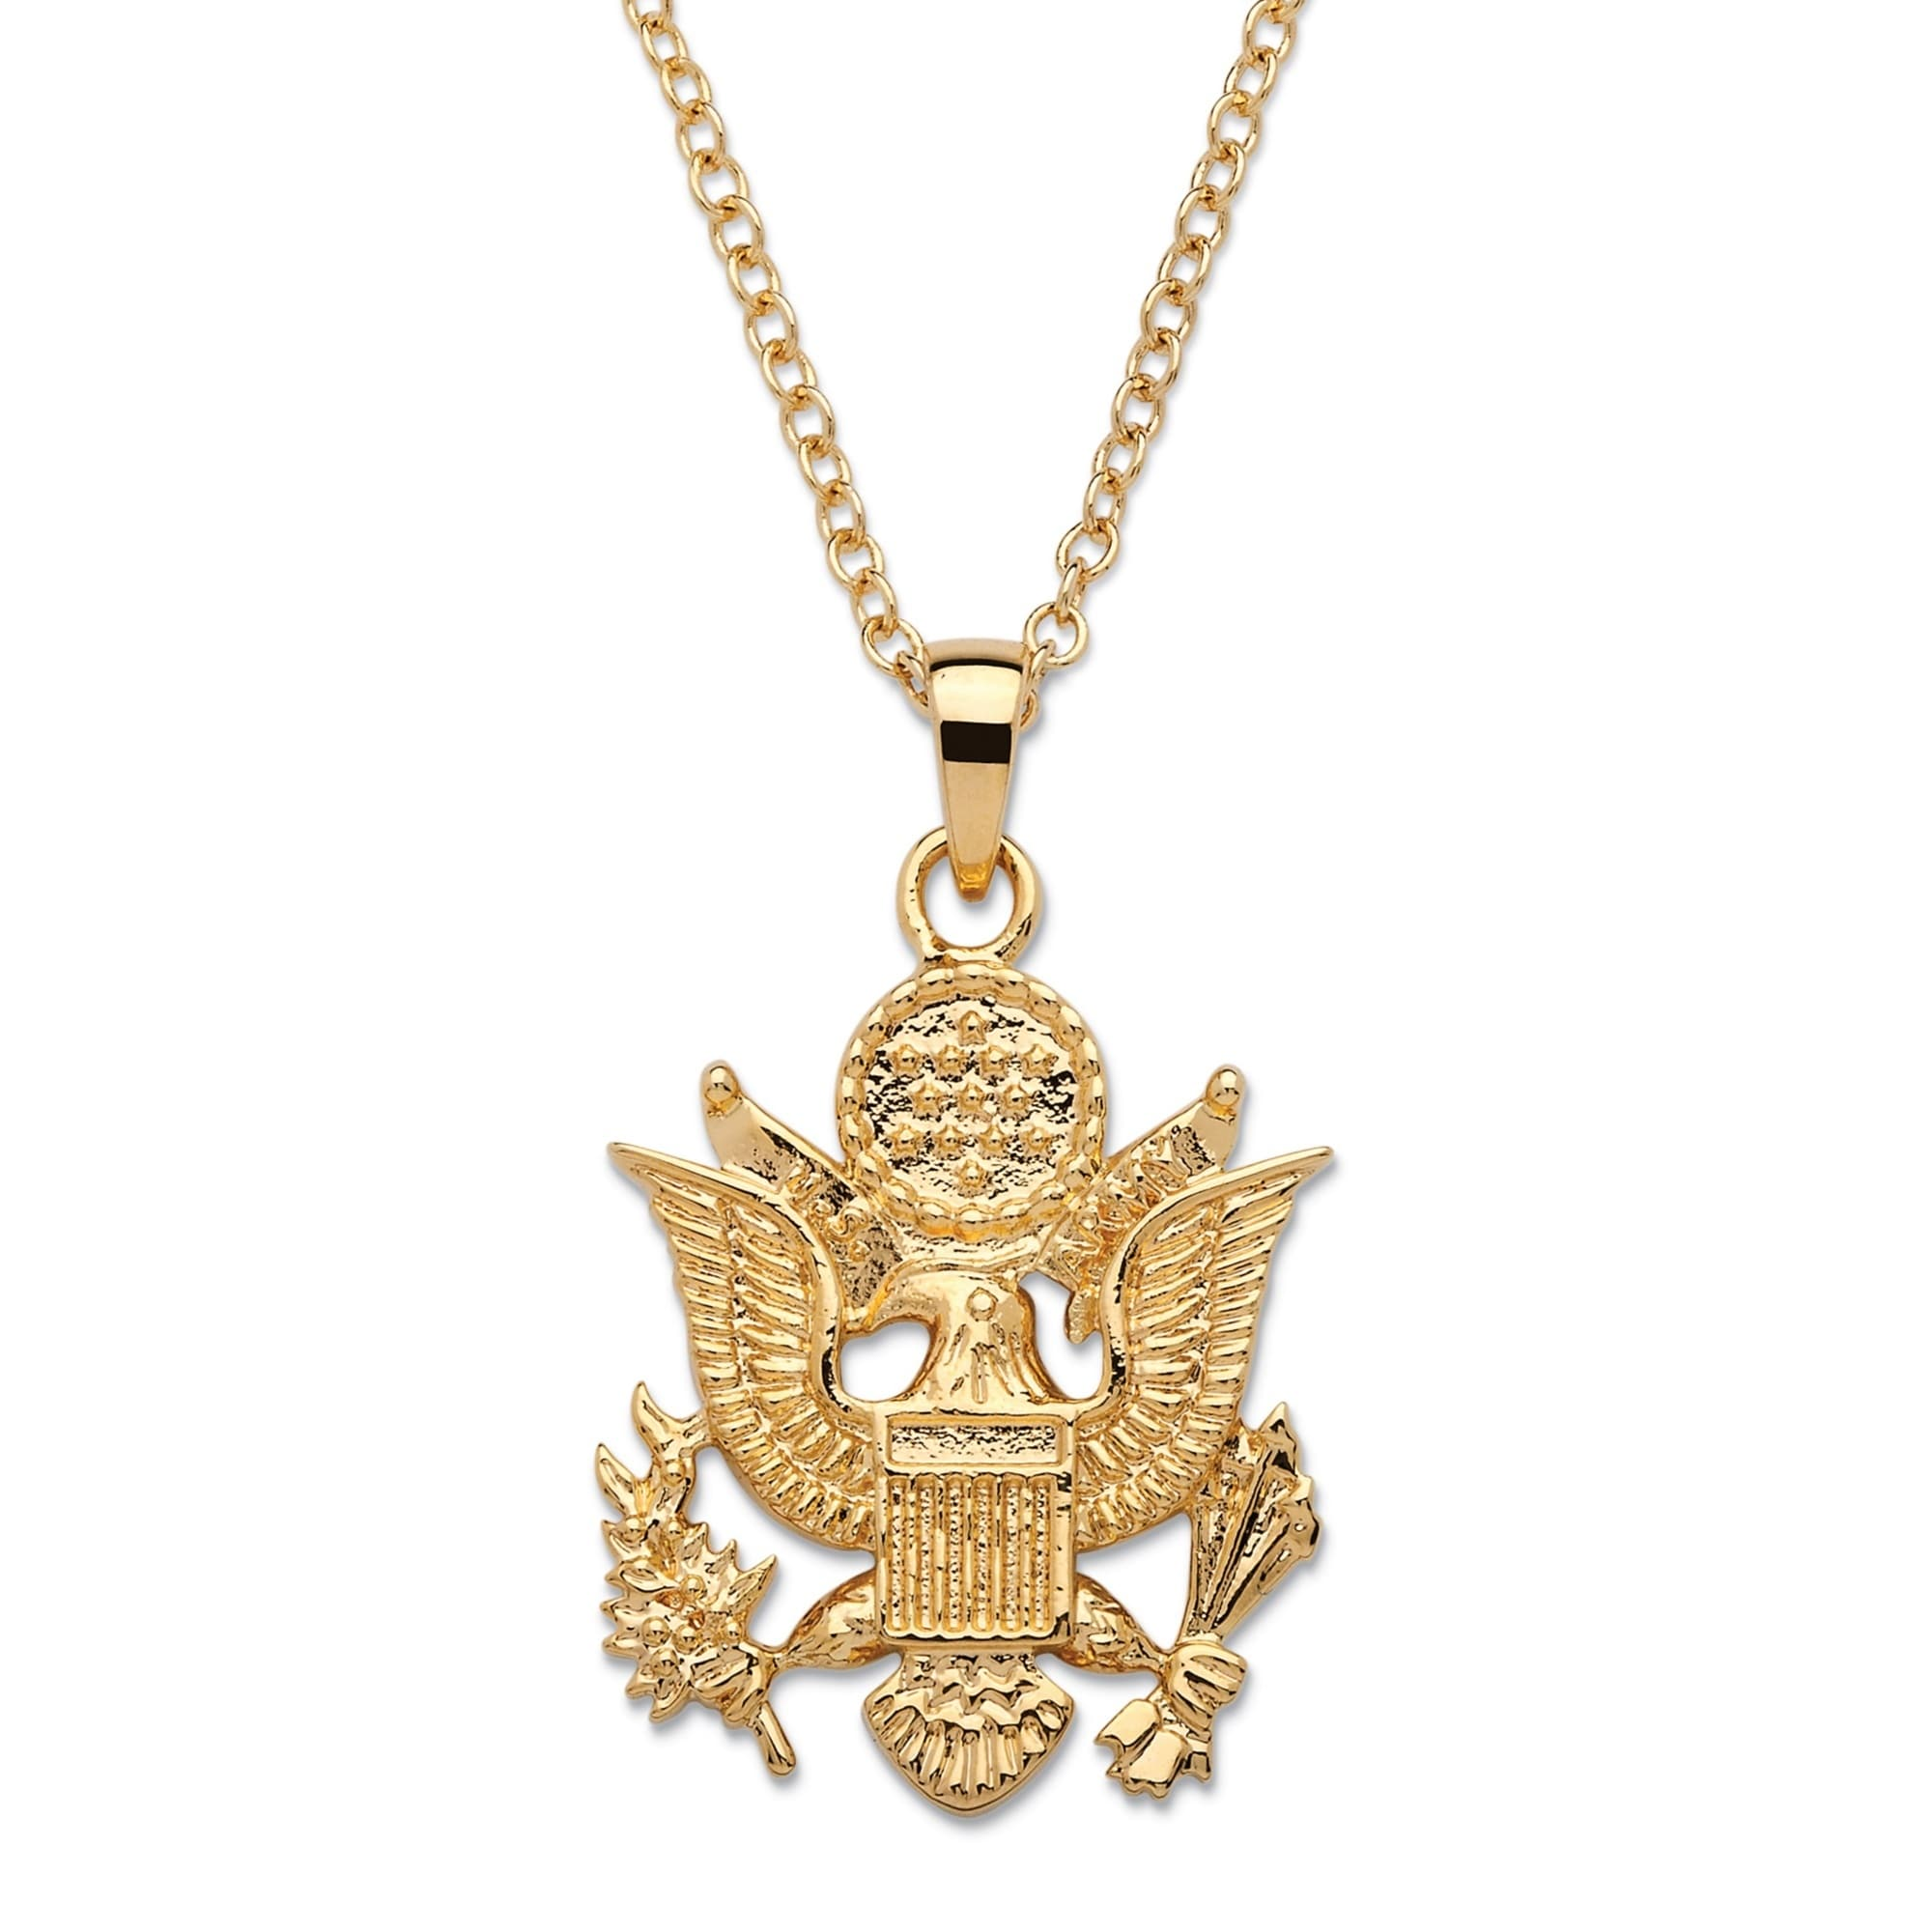 mens over overstock plated free watches palmbeach pendant necklace jewelry product orders navy shipping on s men gold